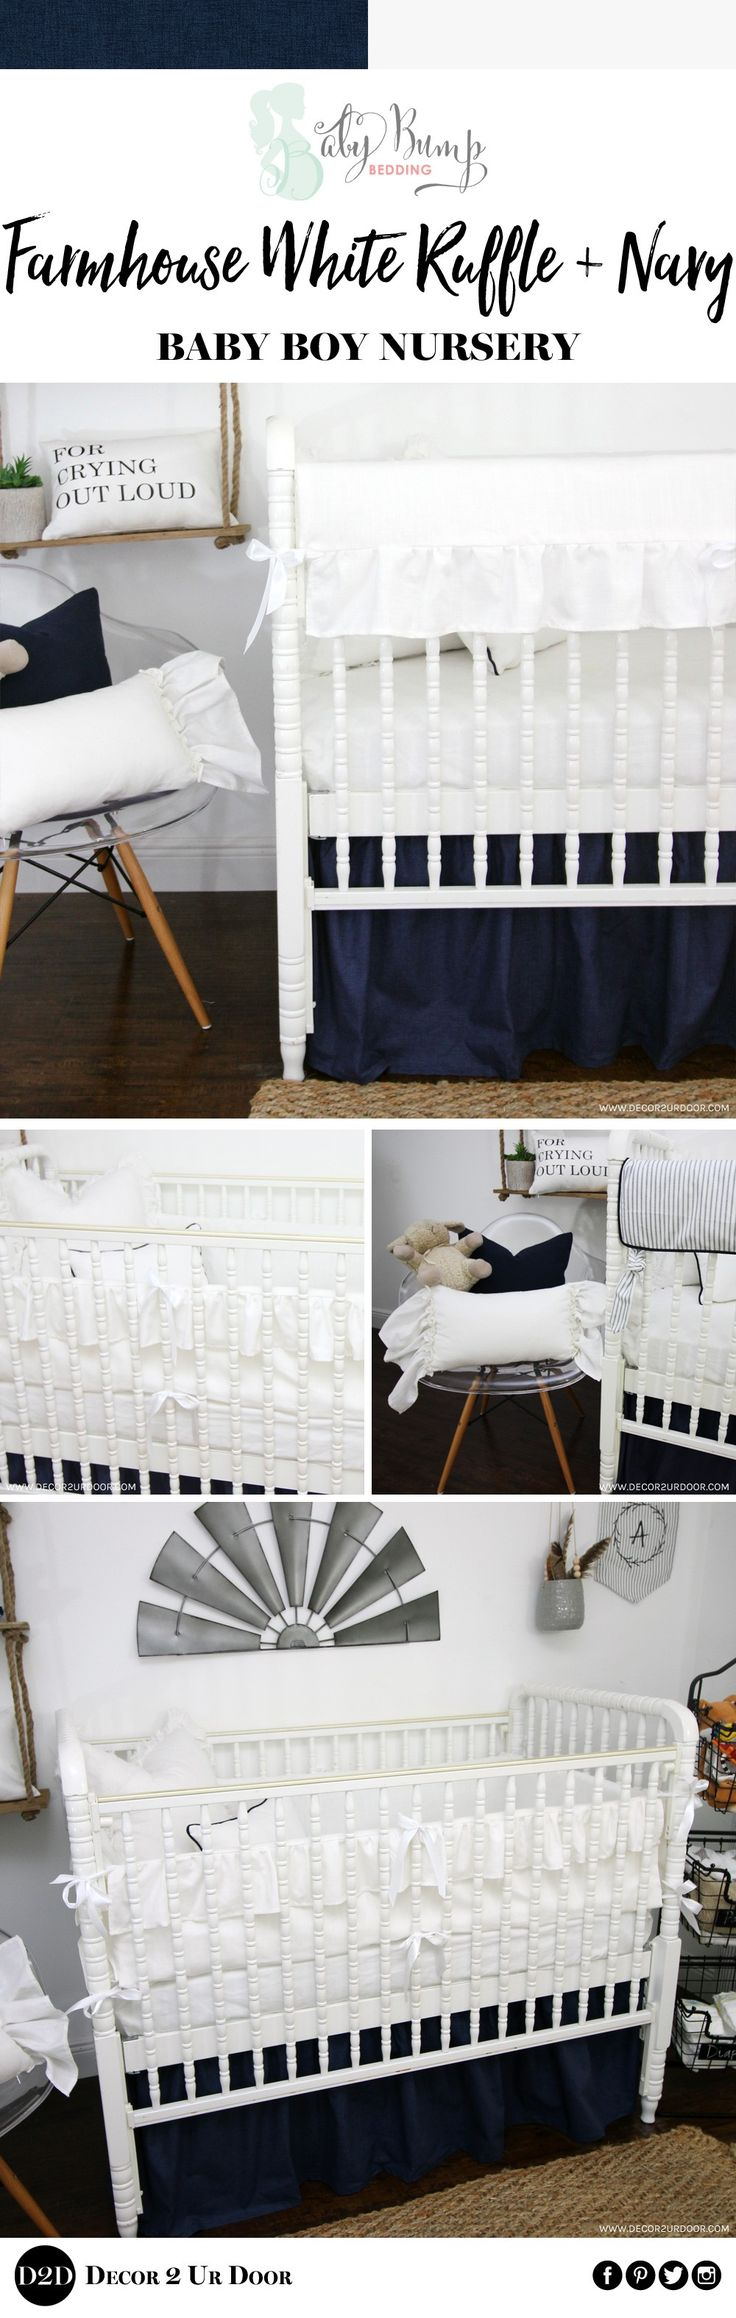 Who says ruffles can't scream boy baby nursery?! This Farmhouse White Ruffle and Navy baby boy bedding is sweet, masculine, and timeless. Our brand new design is featured on the ruffle linen rail guards and ruffle linen bumper set.PS: Our bumper set is now anEXCLUSIVE D2D BBB Grow With Medesign. Use the 4 pieces as a bumper set - then use the two long pieces as rail guards as the baby grows. 2-in-1 bumper set/rail guards!This white and navy neutral baby boy bedding set is simple yet…